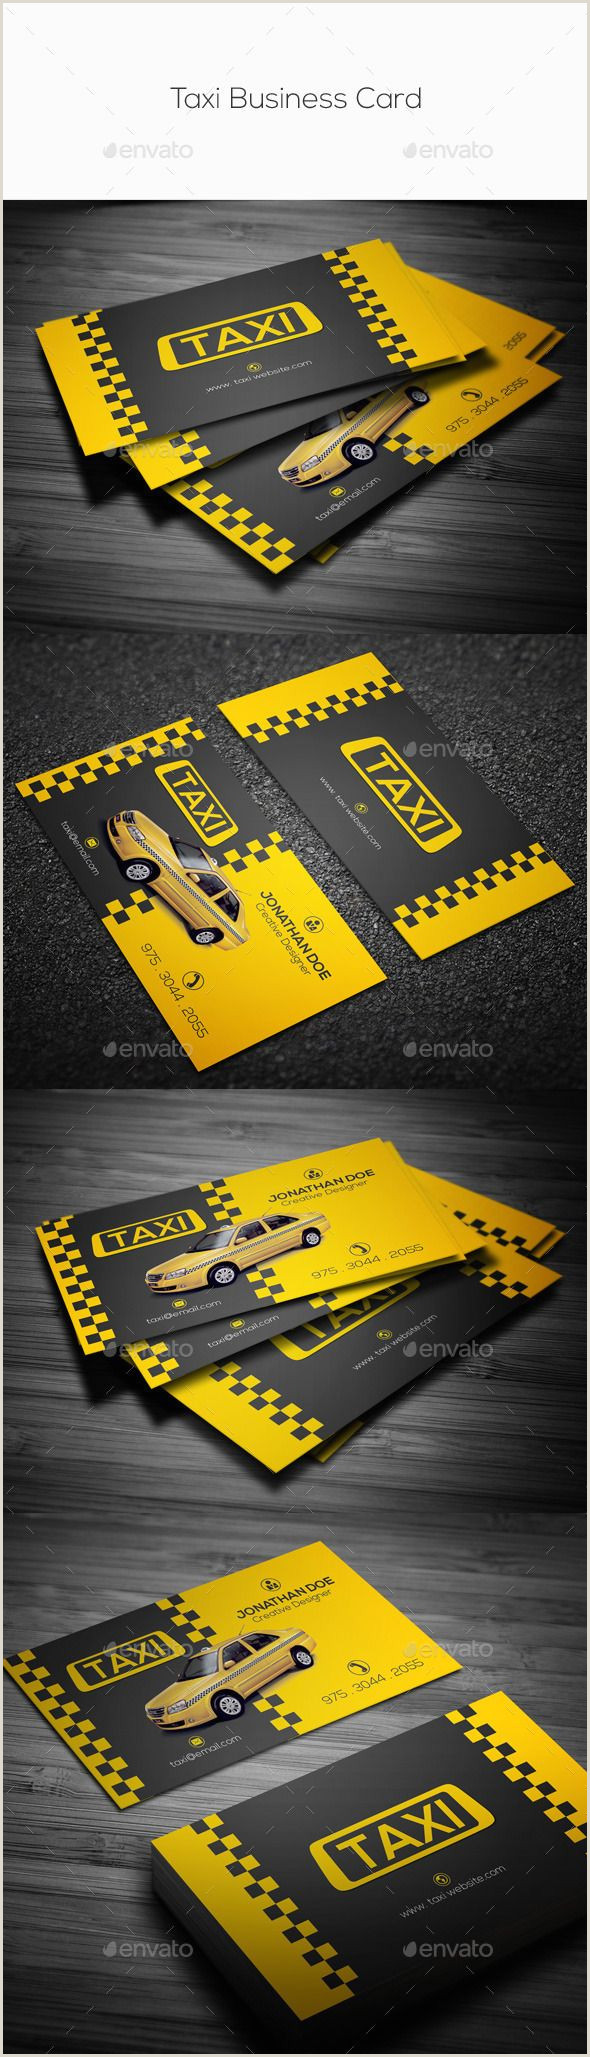 The Best Business Cards For Taxi Image 60 Taxi Ideas